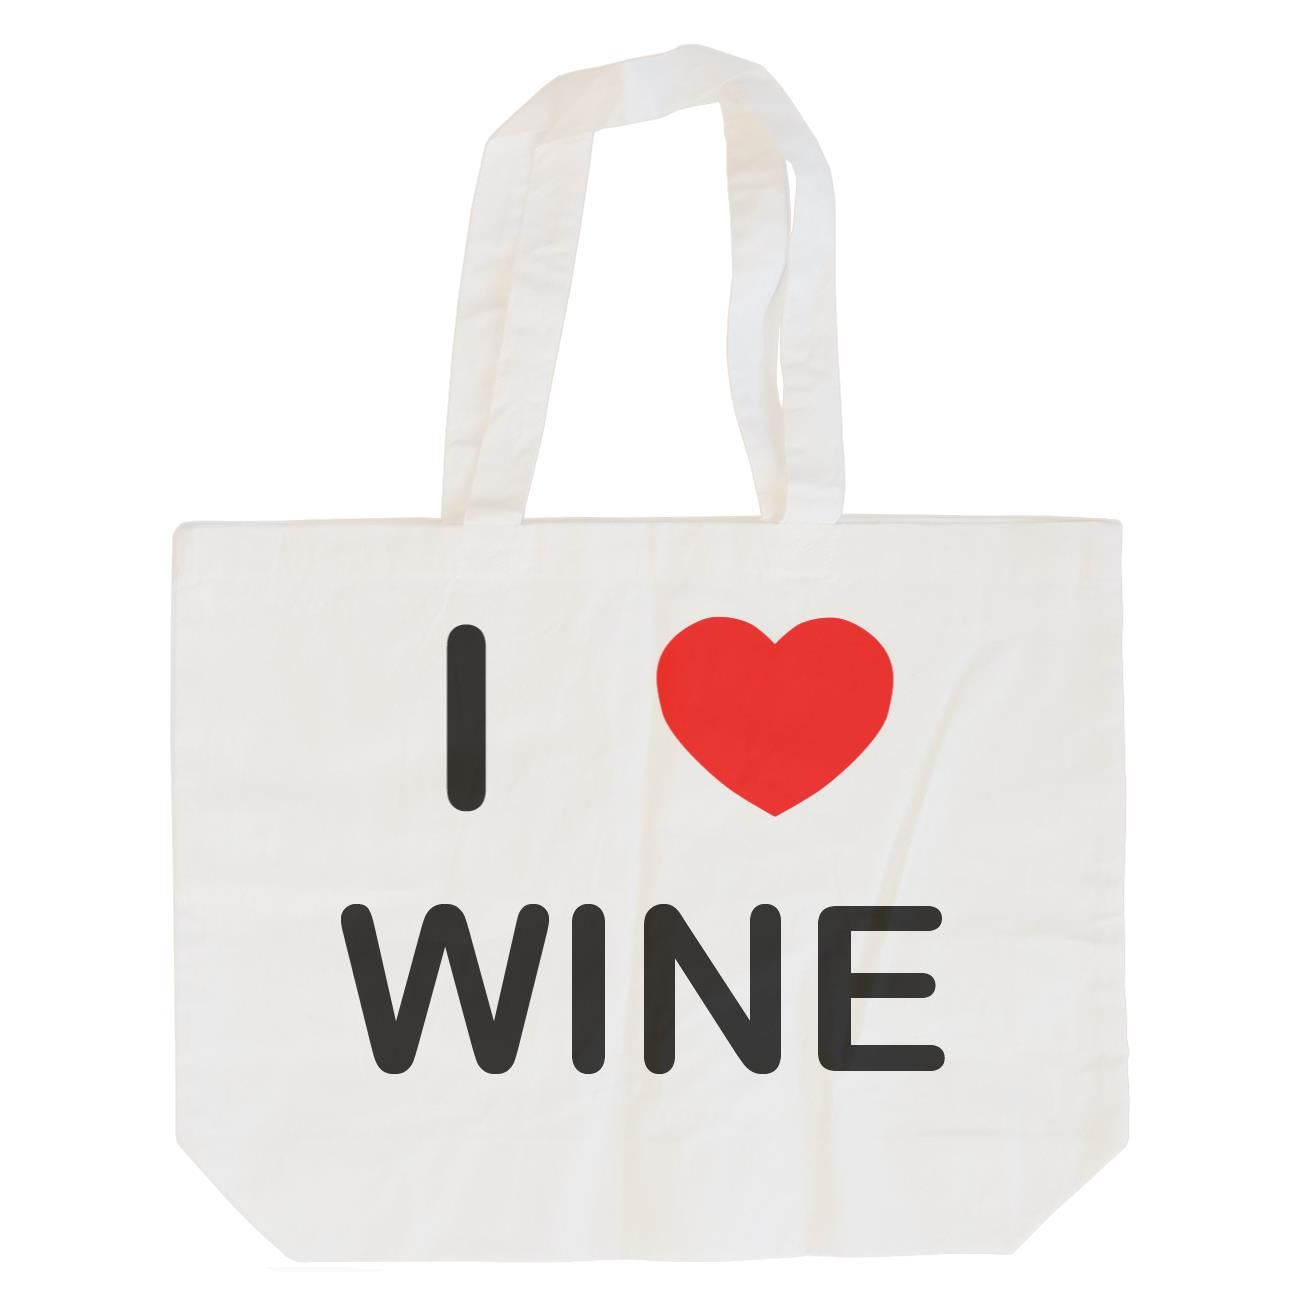 I Love Wine - Cotton Bag | Size choice Tote, Shopper or Sling